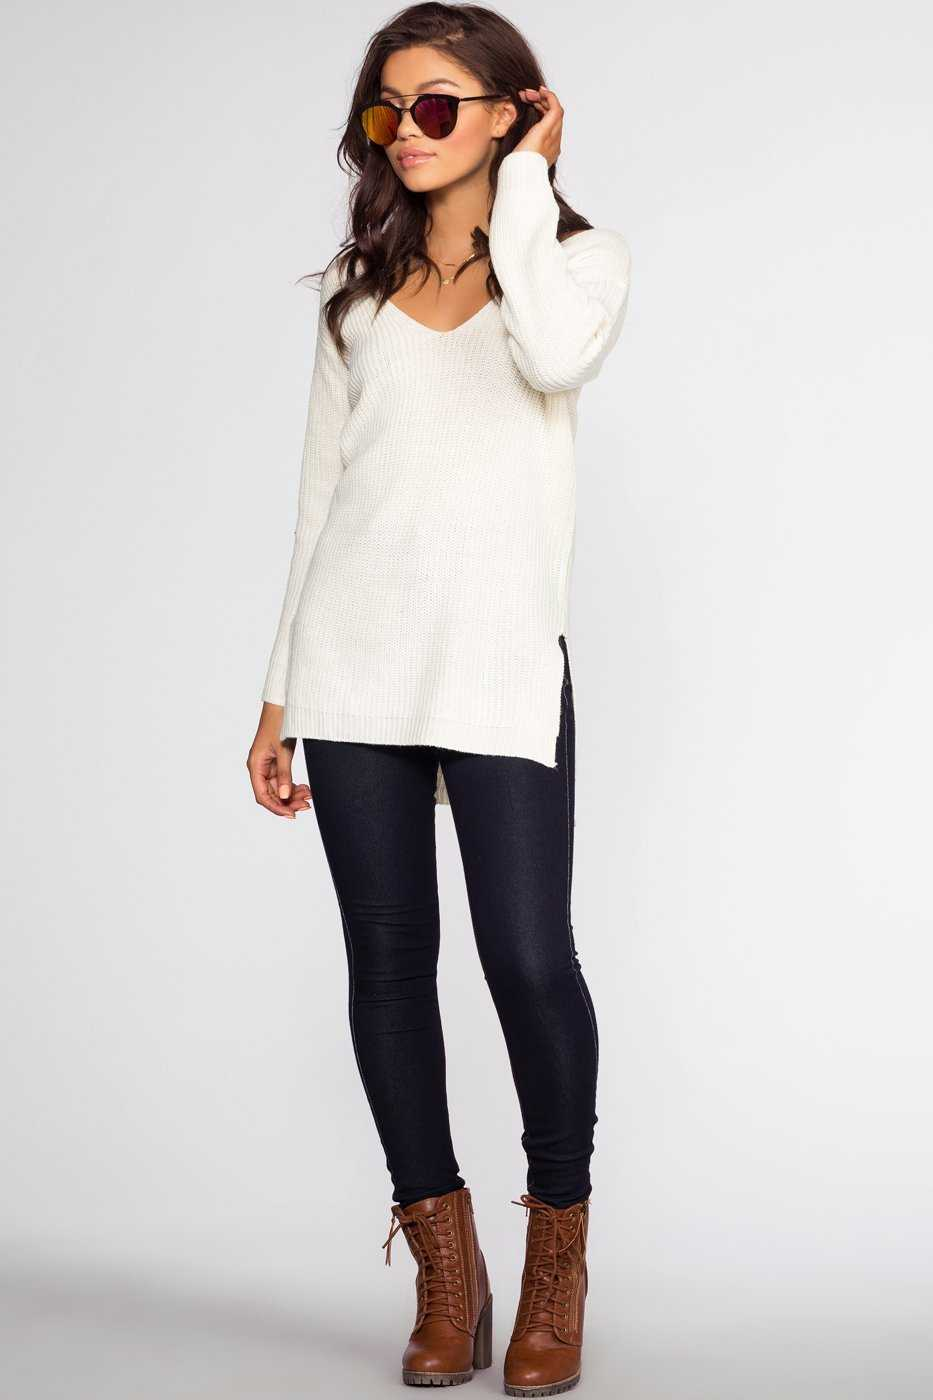 Tops - Priestley Lace Back Sweater - Ivory